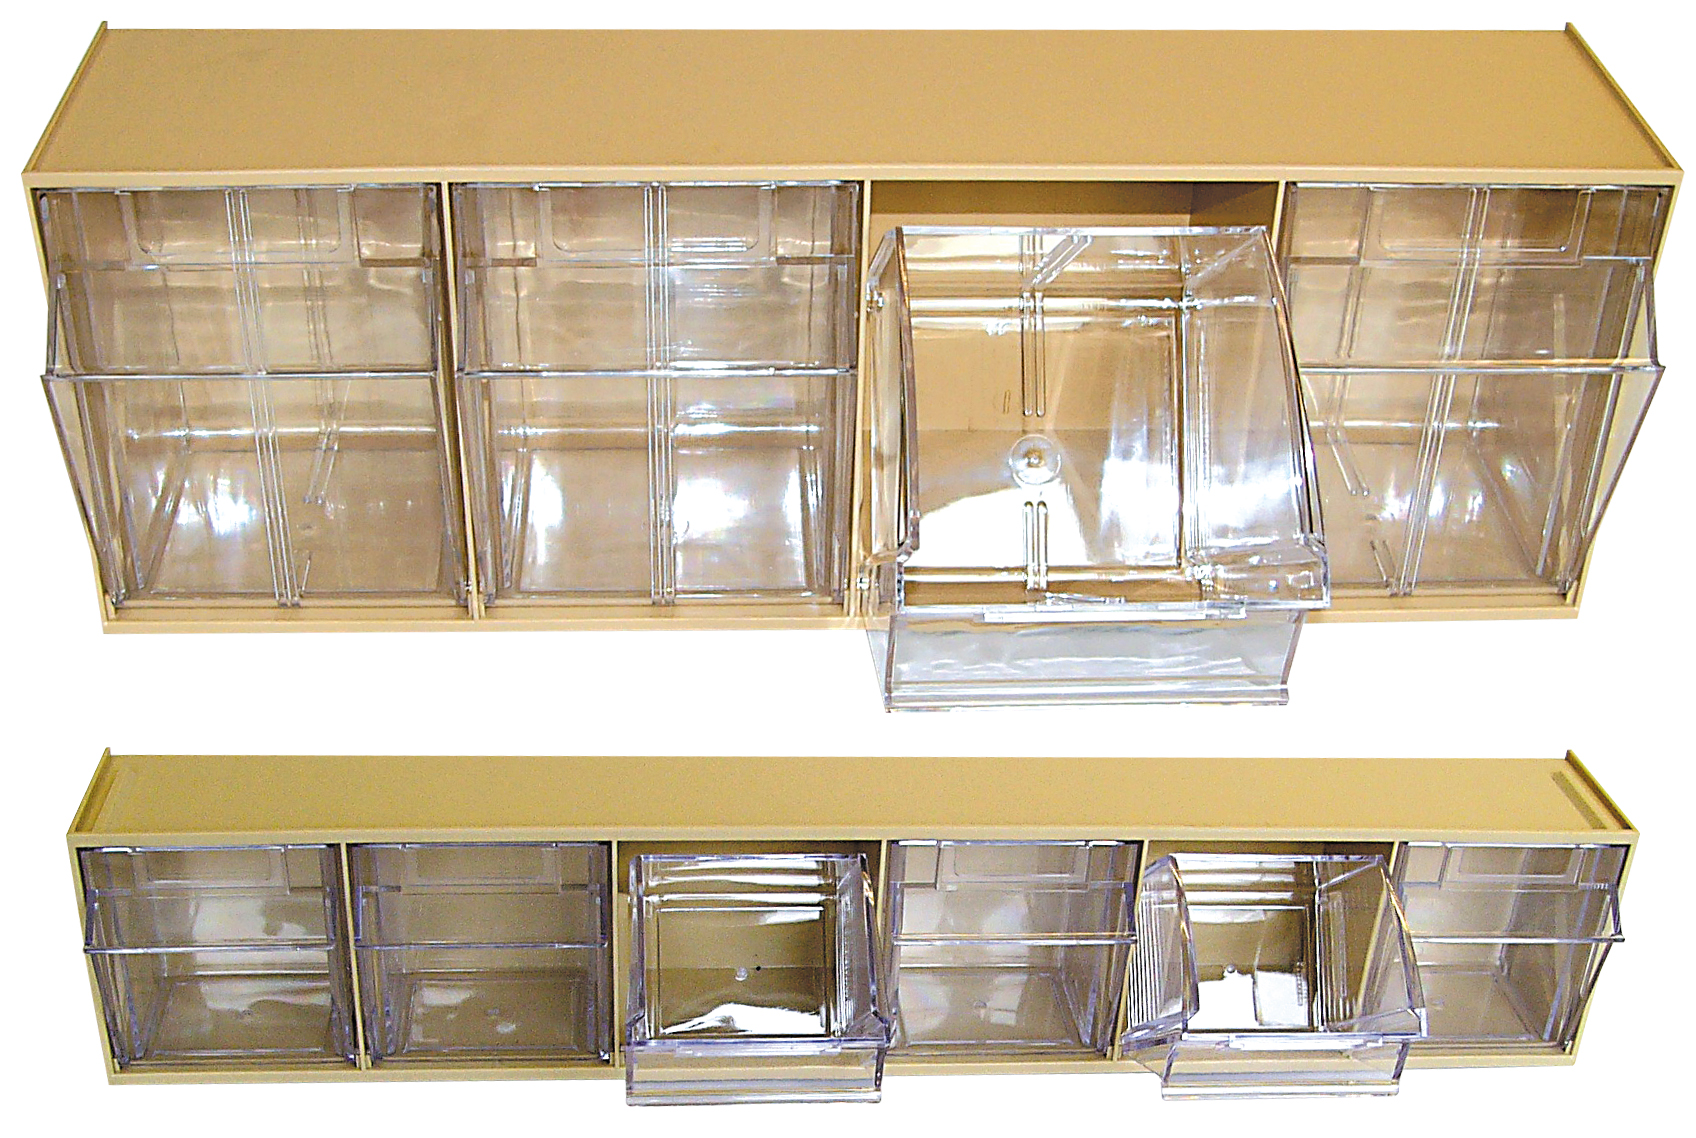 Storage Compartment Bins